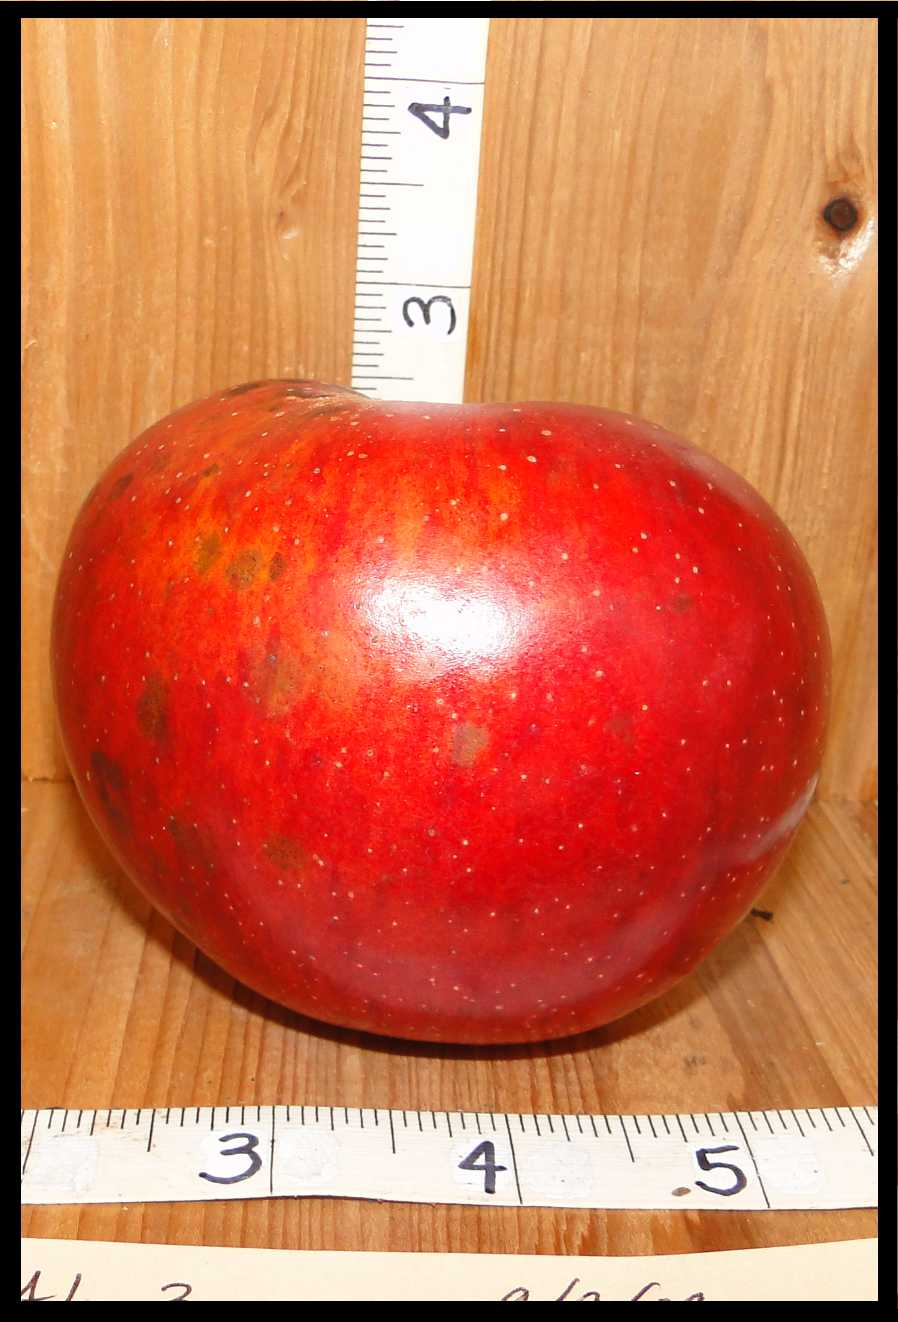 red apple mottled with a small amount of yellow